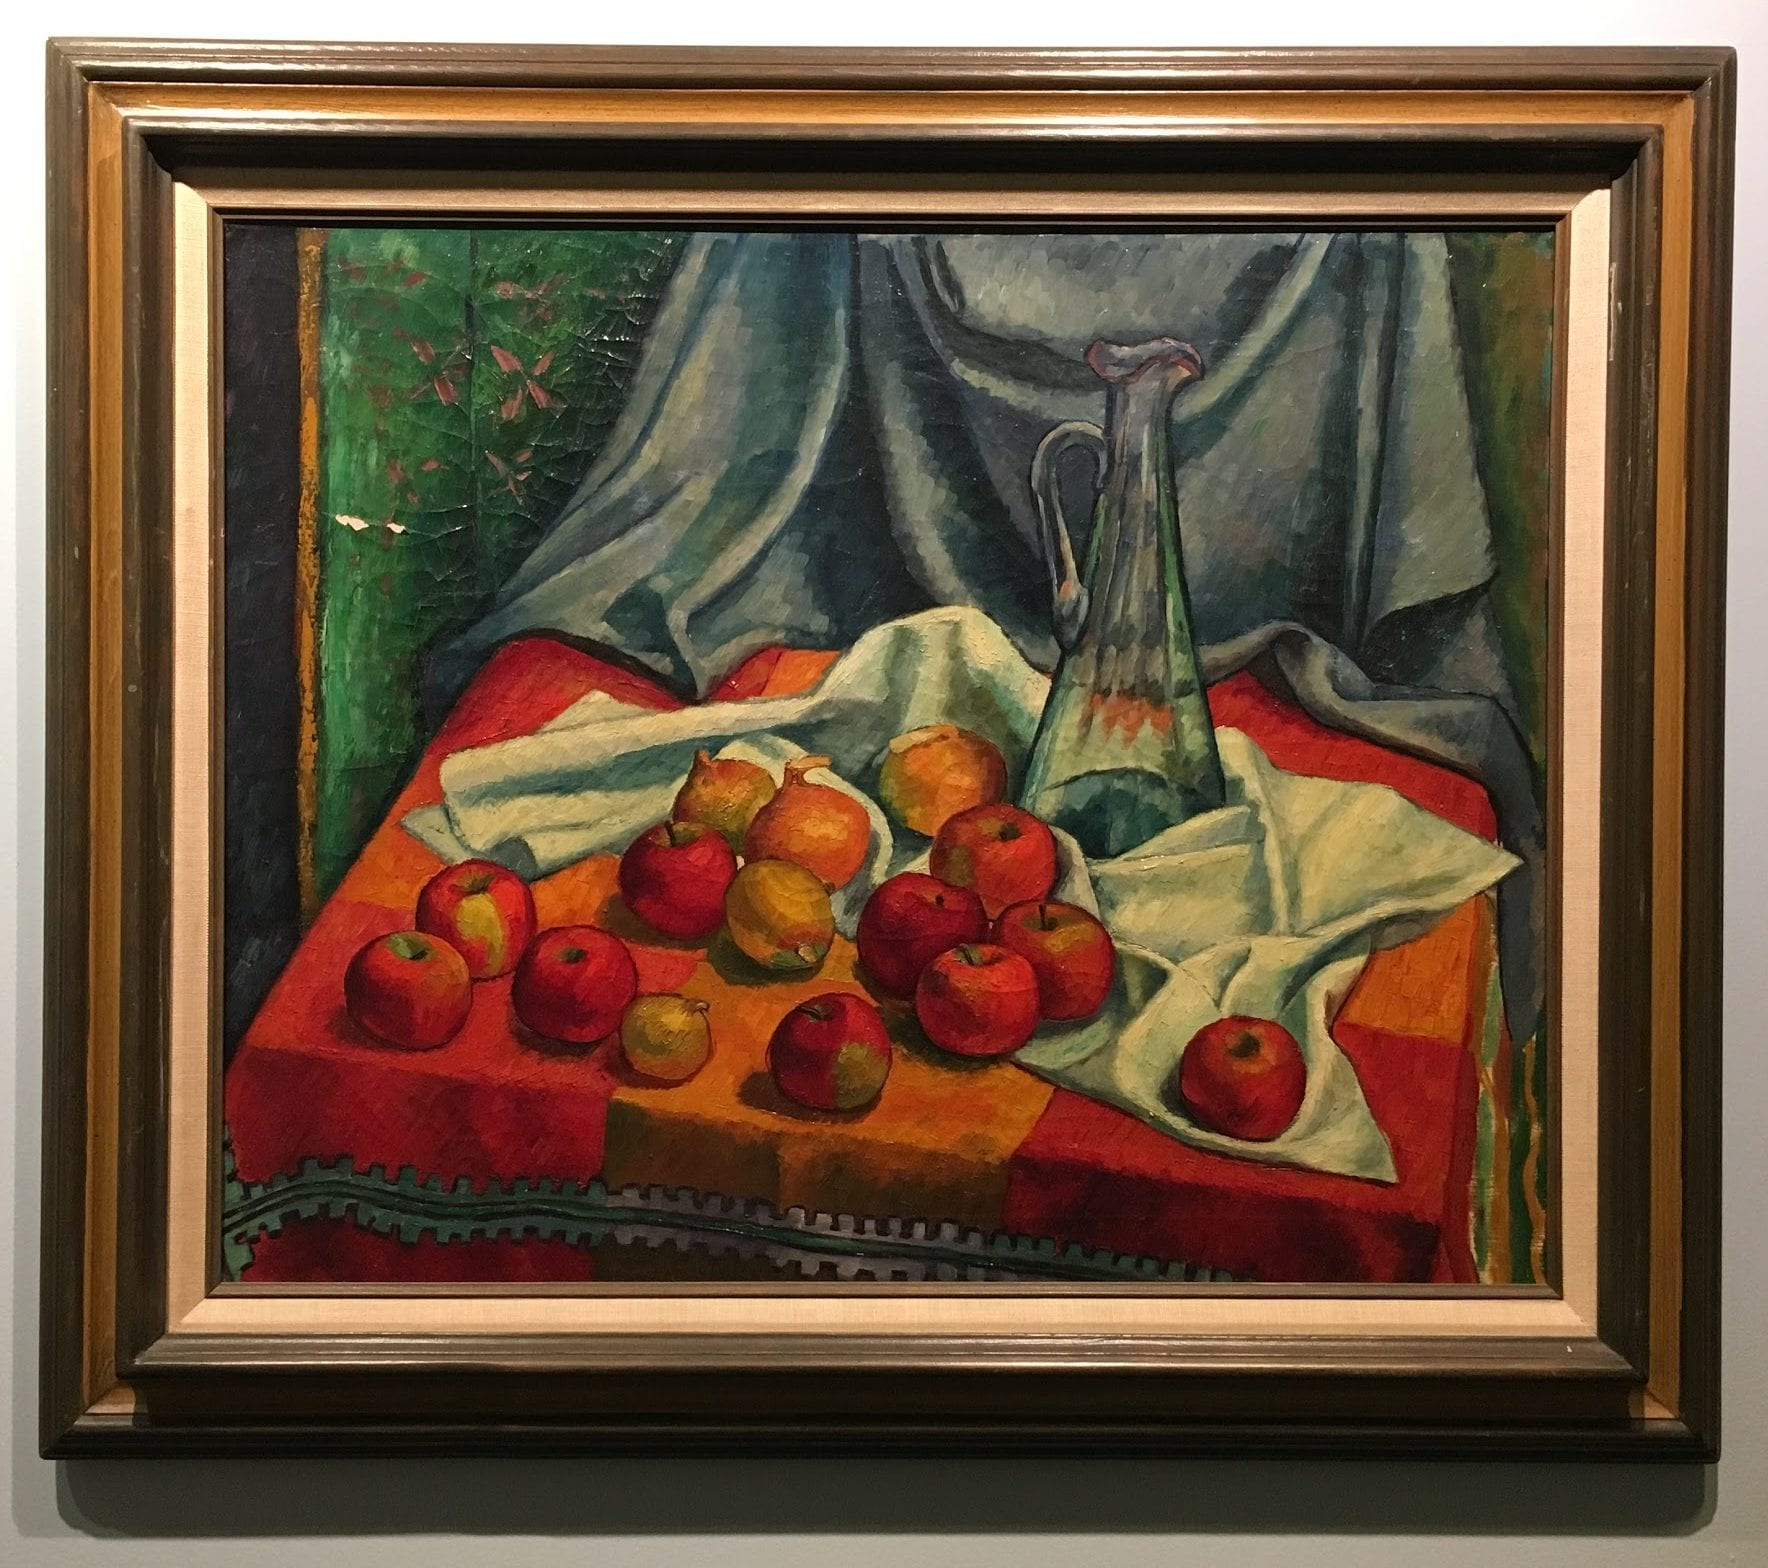 apples on a red table cloth by a blue curtain